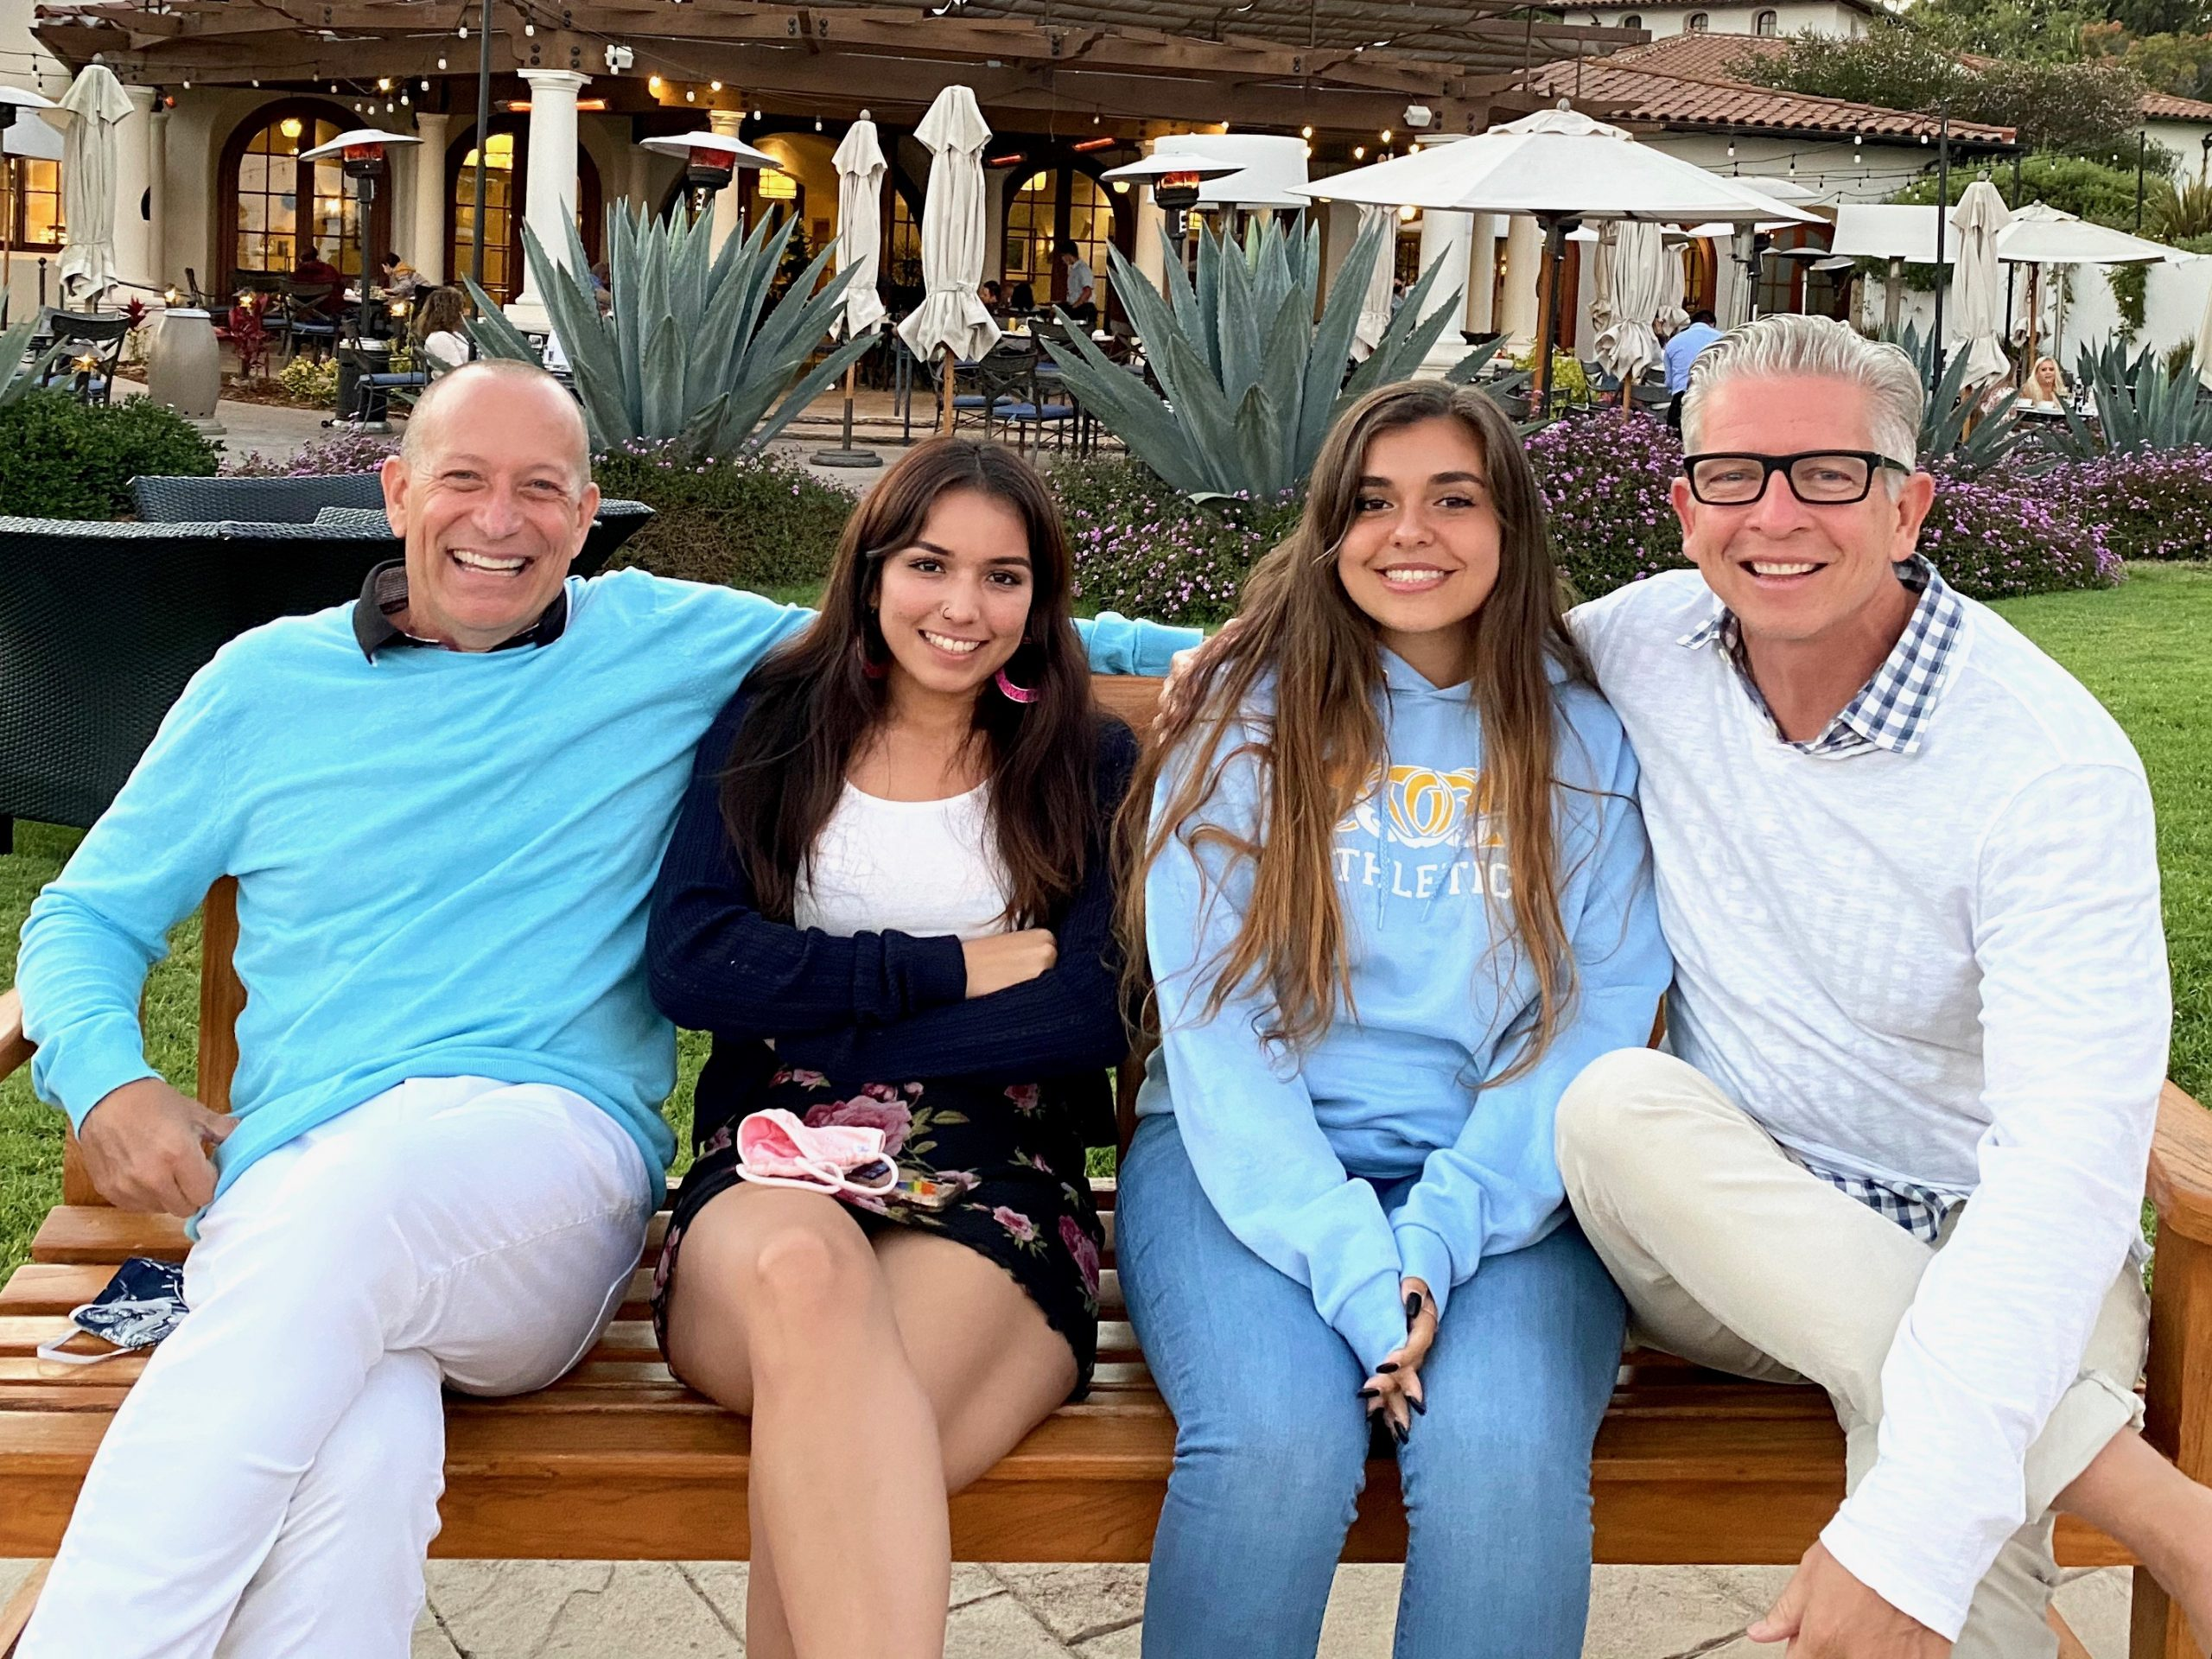 2 dads with daughters at Ritz-Carlton Bacara Resort in Santa Barbara, CA